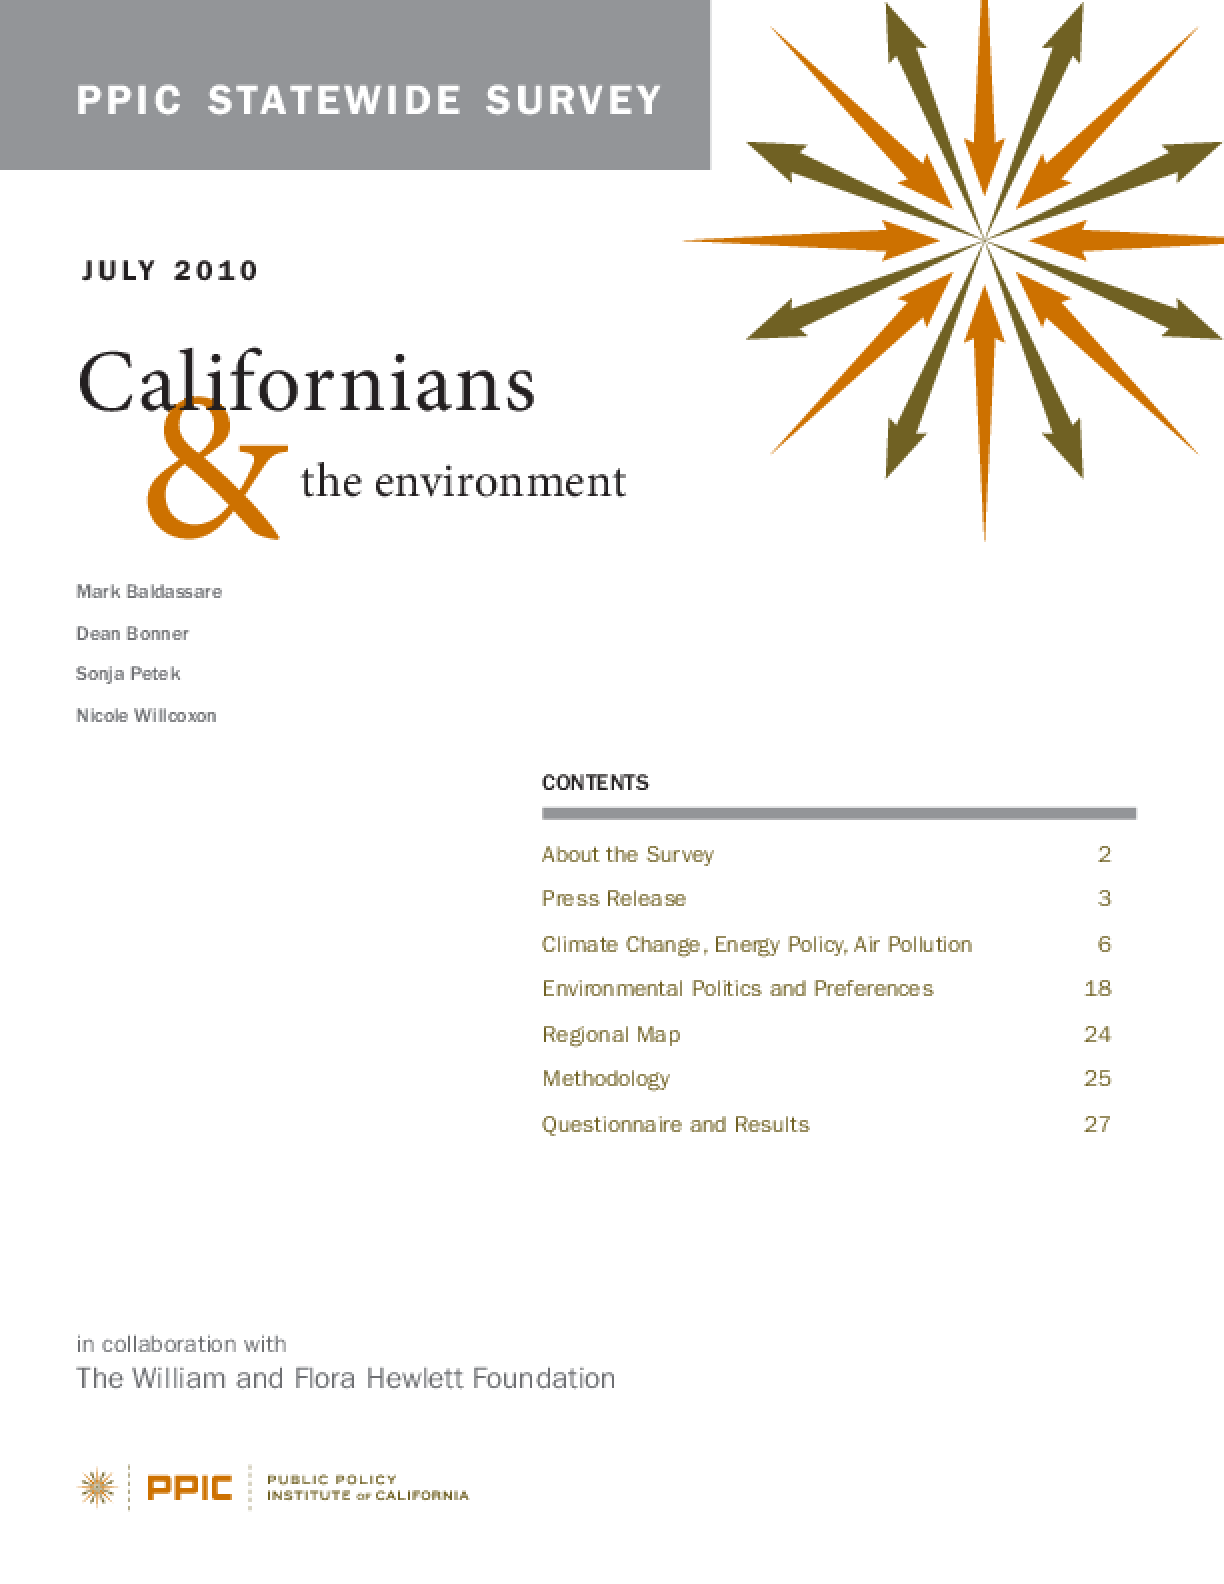 PPIC Statewide Survey: Californians and the Environment